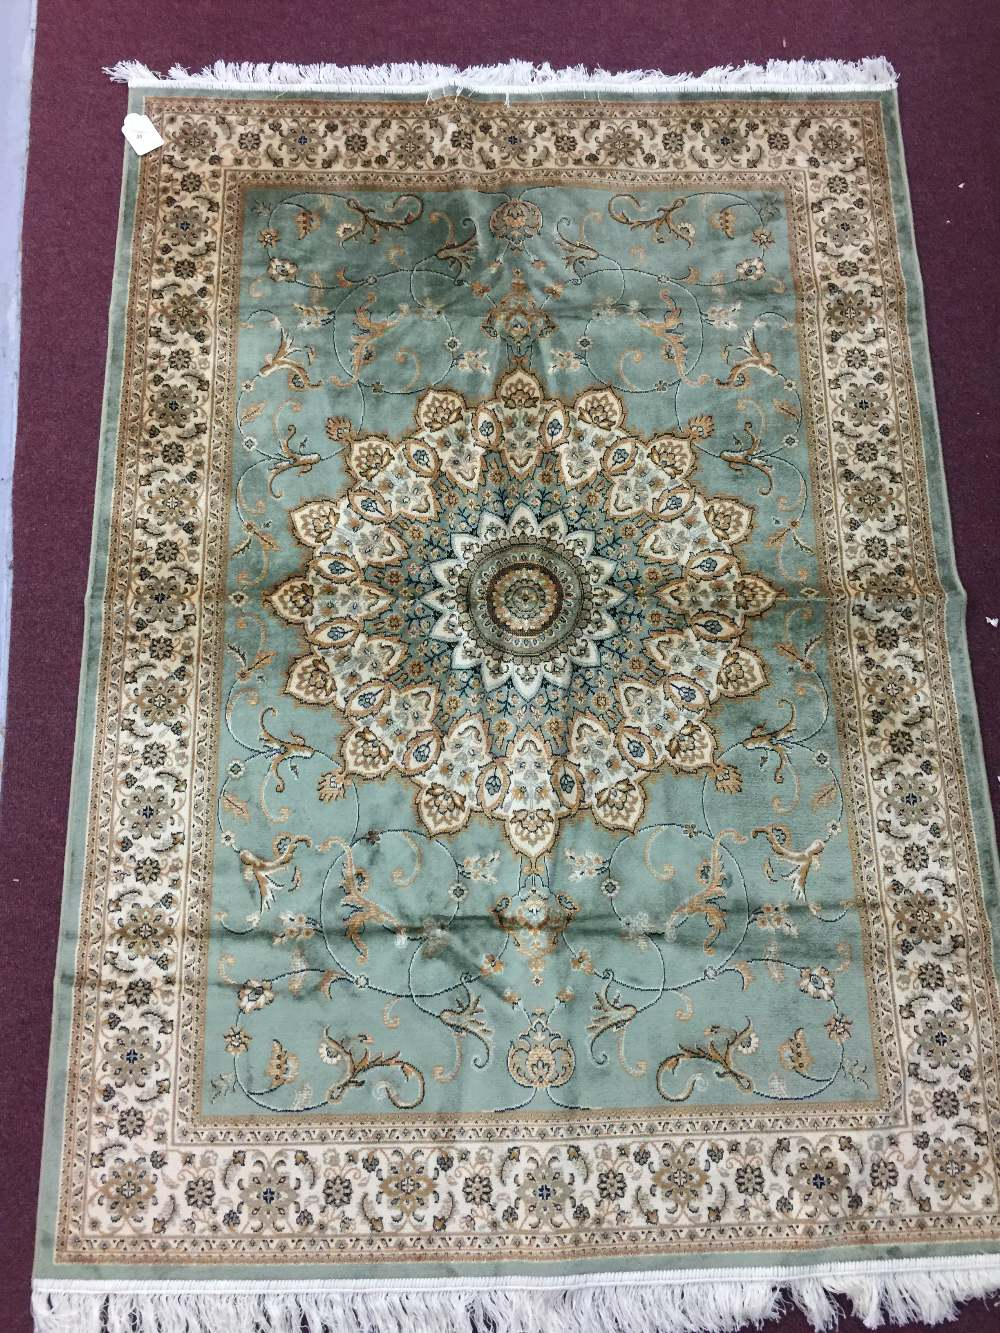 Lot 35 - @21st cent Rugs: Keshan rug, green ground. 1.90 x 1.40.